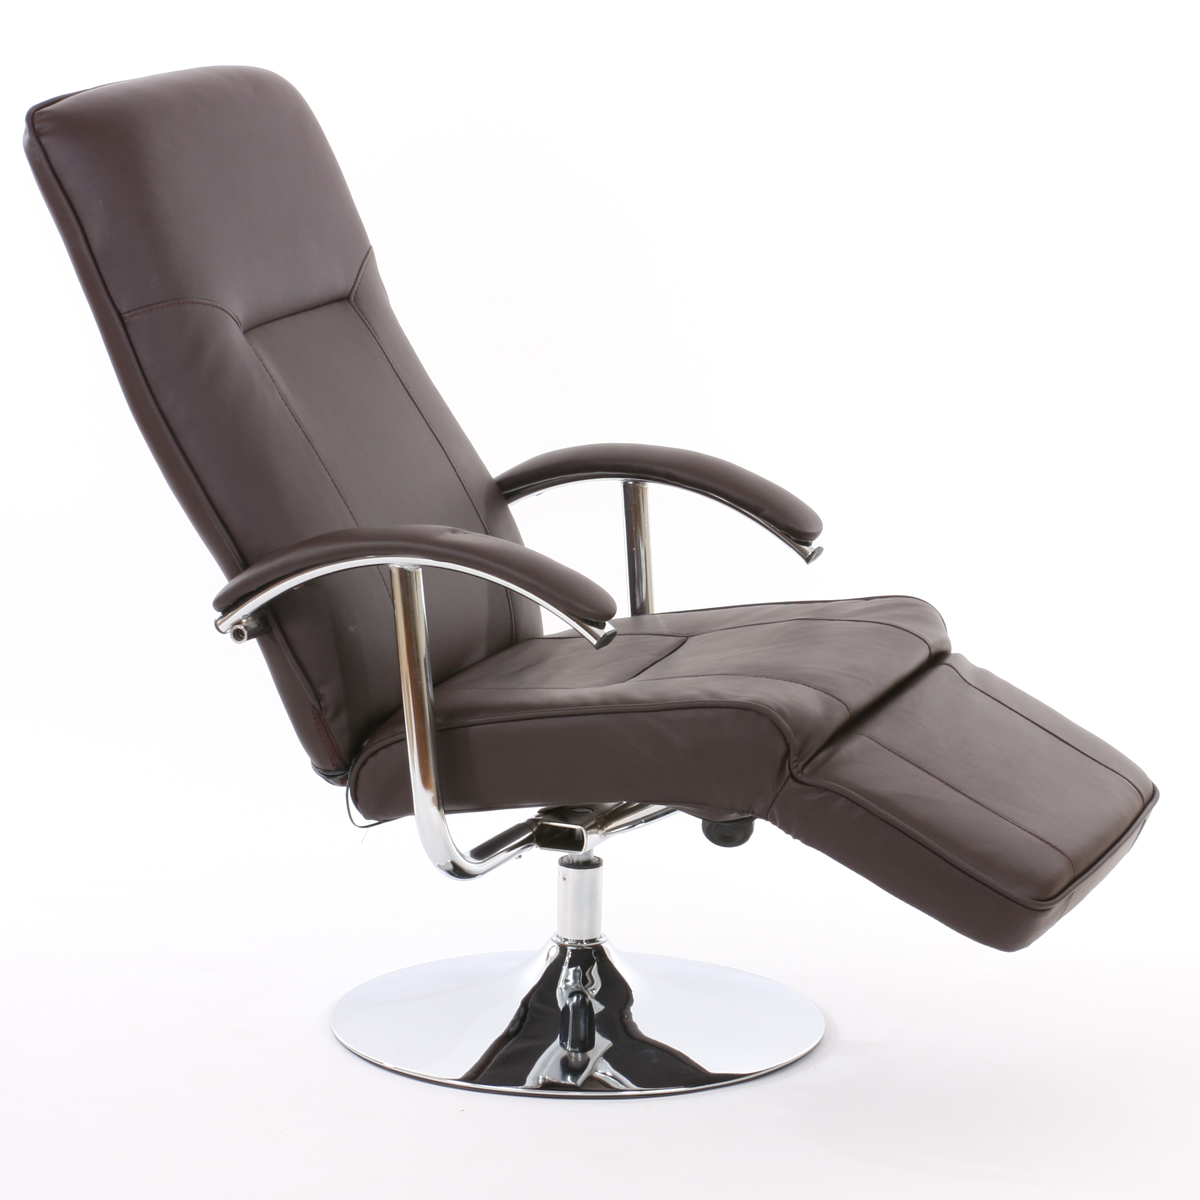 Fauteuil inclinable relax style plusieurs coloris disponible fautincl relax - Fauteuil relax marron ...